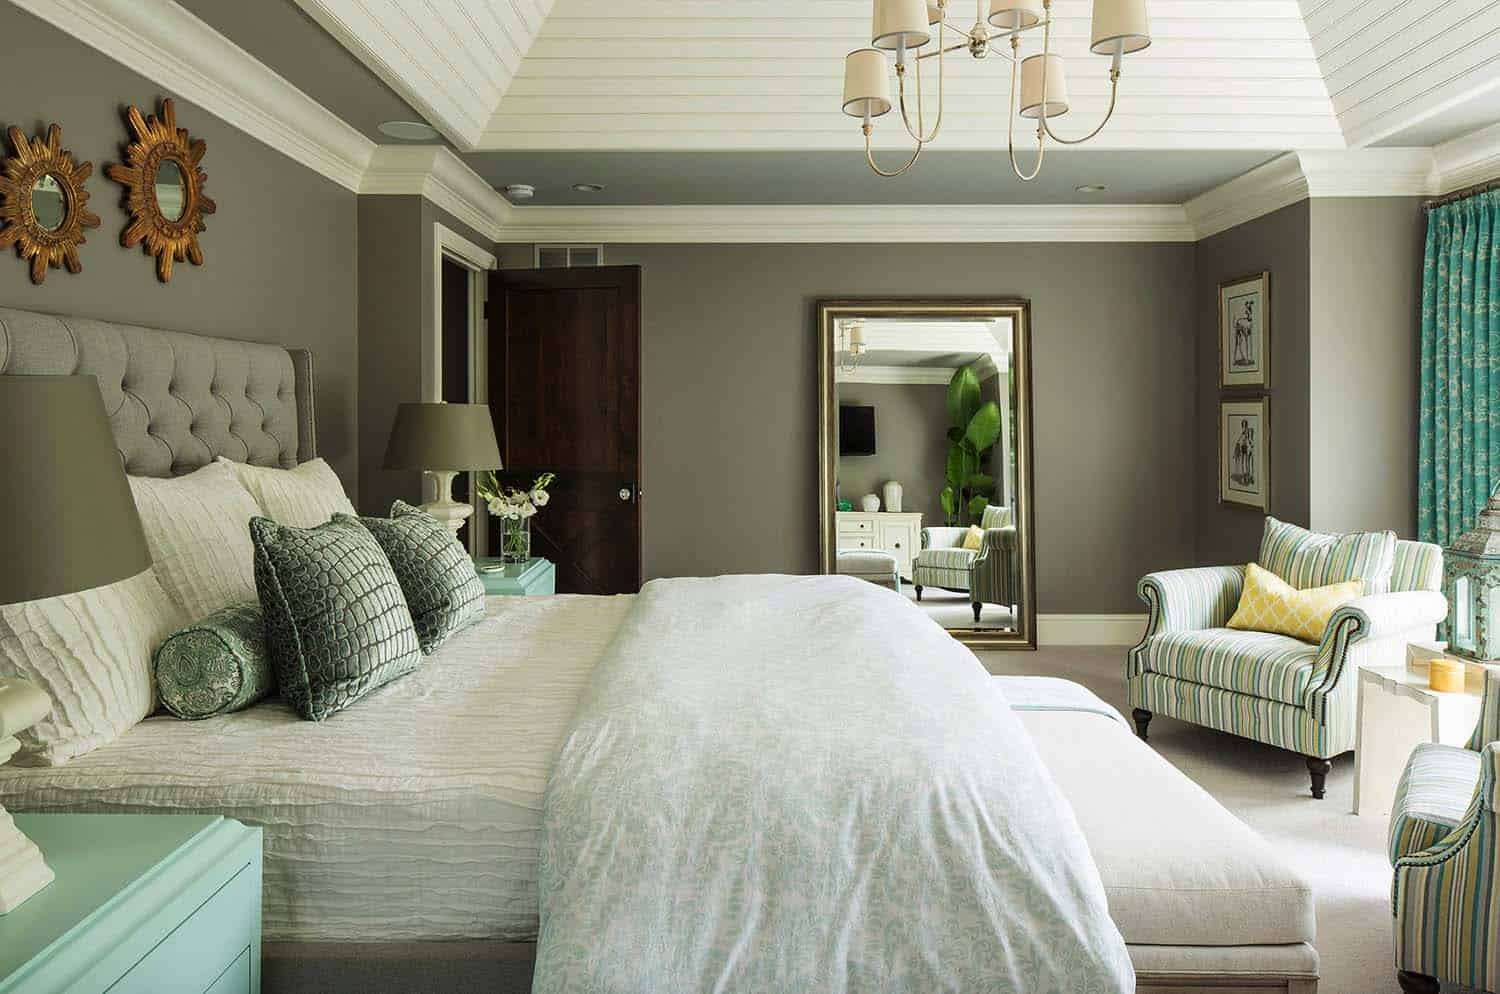 Master Bedroom 23 Neutral Walls And Bedding Creates A Calming Environment While Upholstered Chairs Aqua Painted Nightstands Adds Touch Of Cheer To